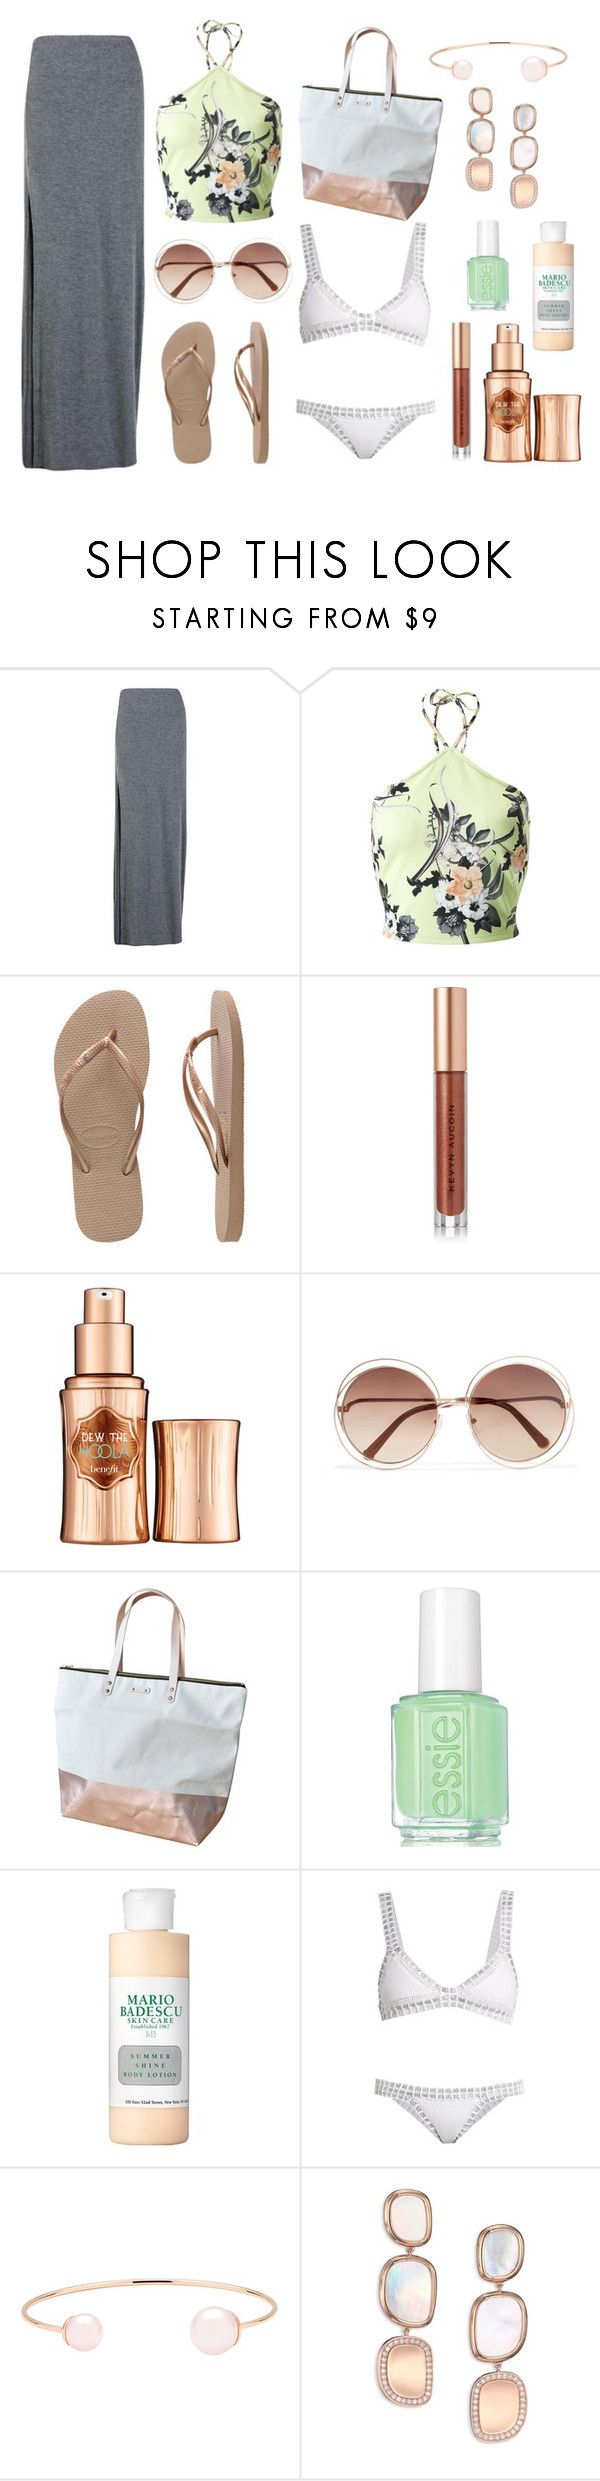 """""""Trinidad and Tobago Travel - Contest Entry 2"""" by lovelisa1997 ❤ liked on Polyvore featuring Boohoo, Miss Selfridge, Havaianas, Kevyn Aucoin, Benefit, Chloé, Essie, Mario Badescu Skin Care, kiini and Ted Baker"""